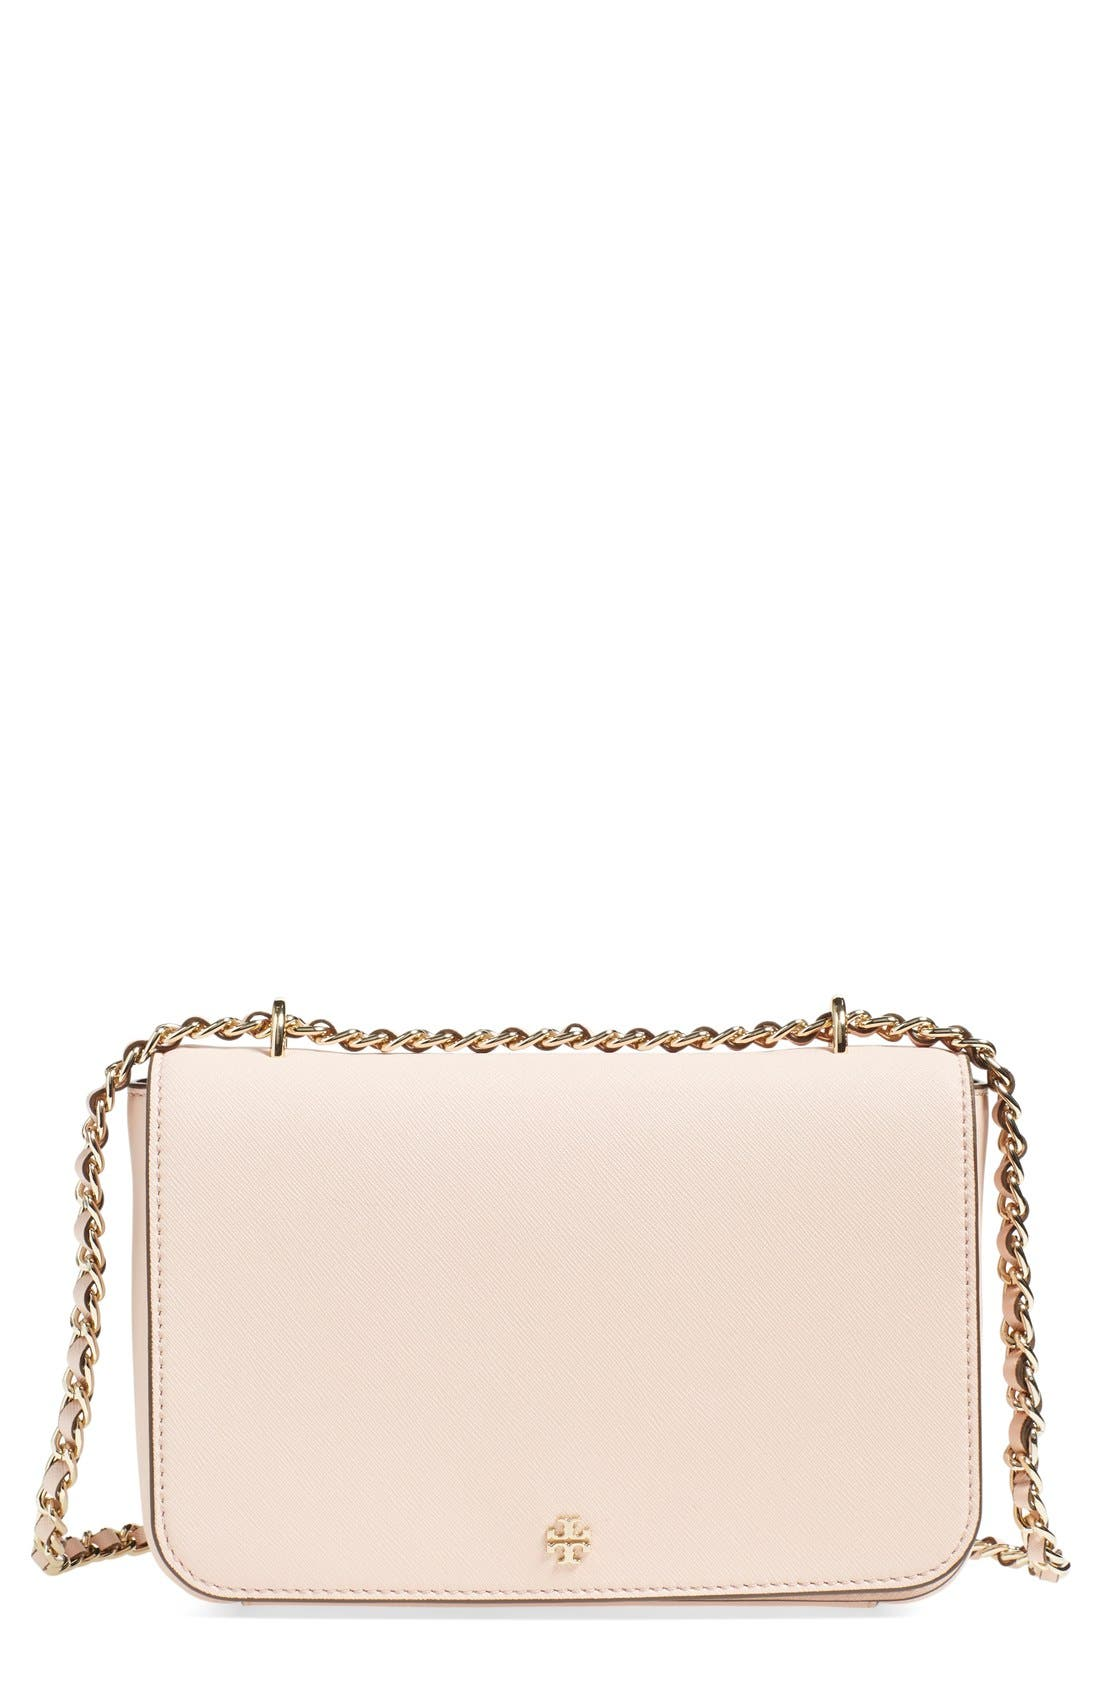 Alternate Image 1 Selected - Tory Burch 'Robinson' Leather Convertible Shoulder Bag